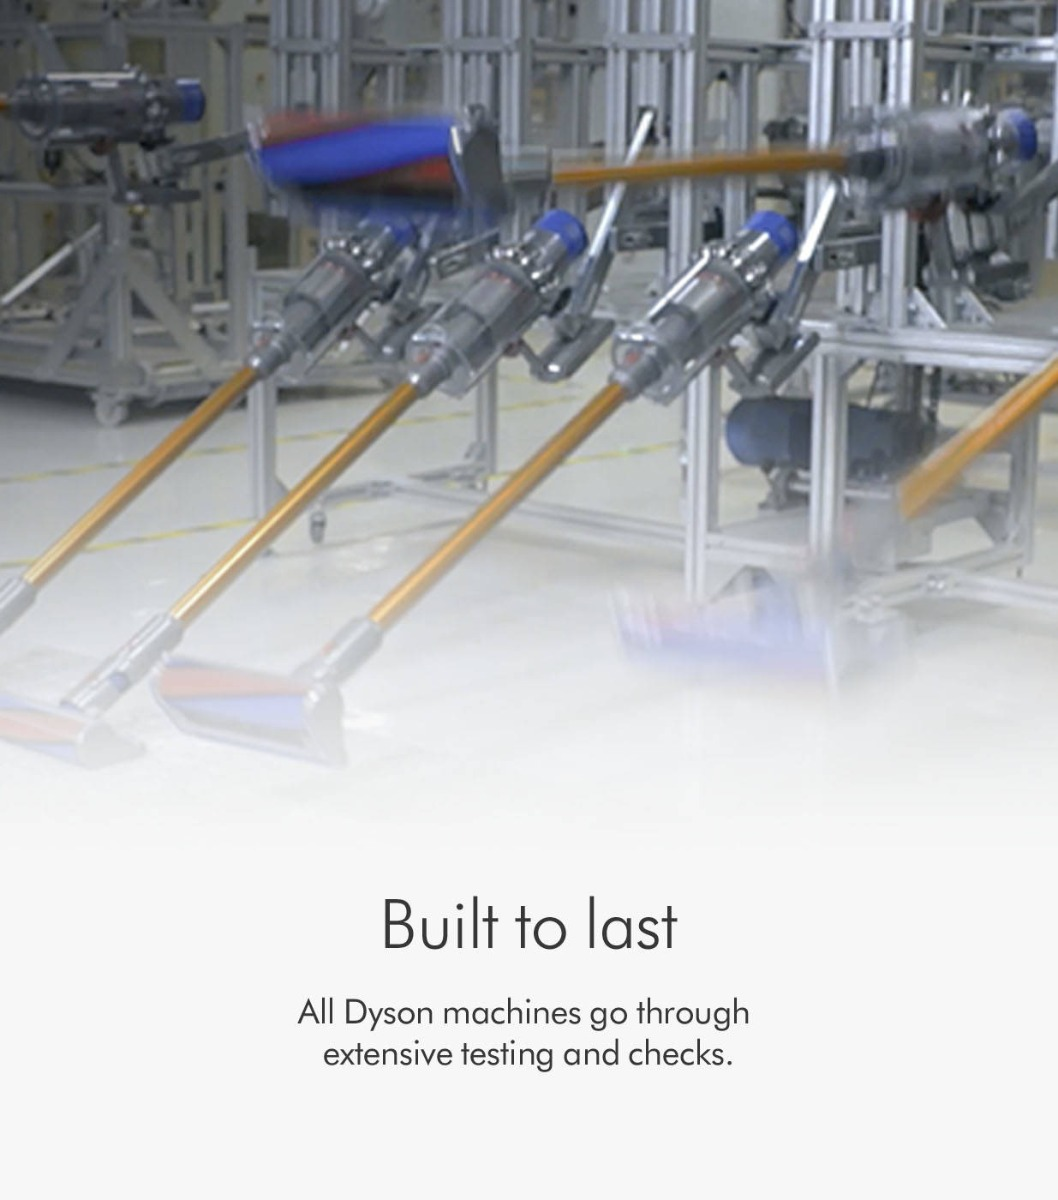 Built to last